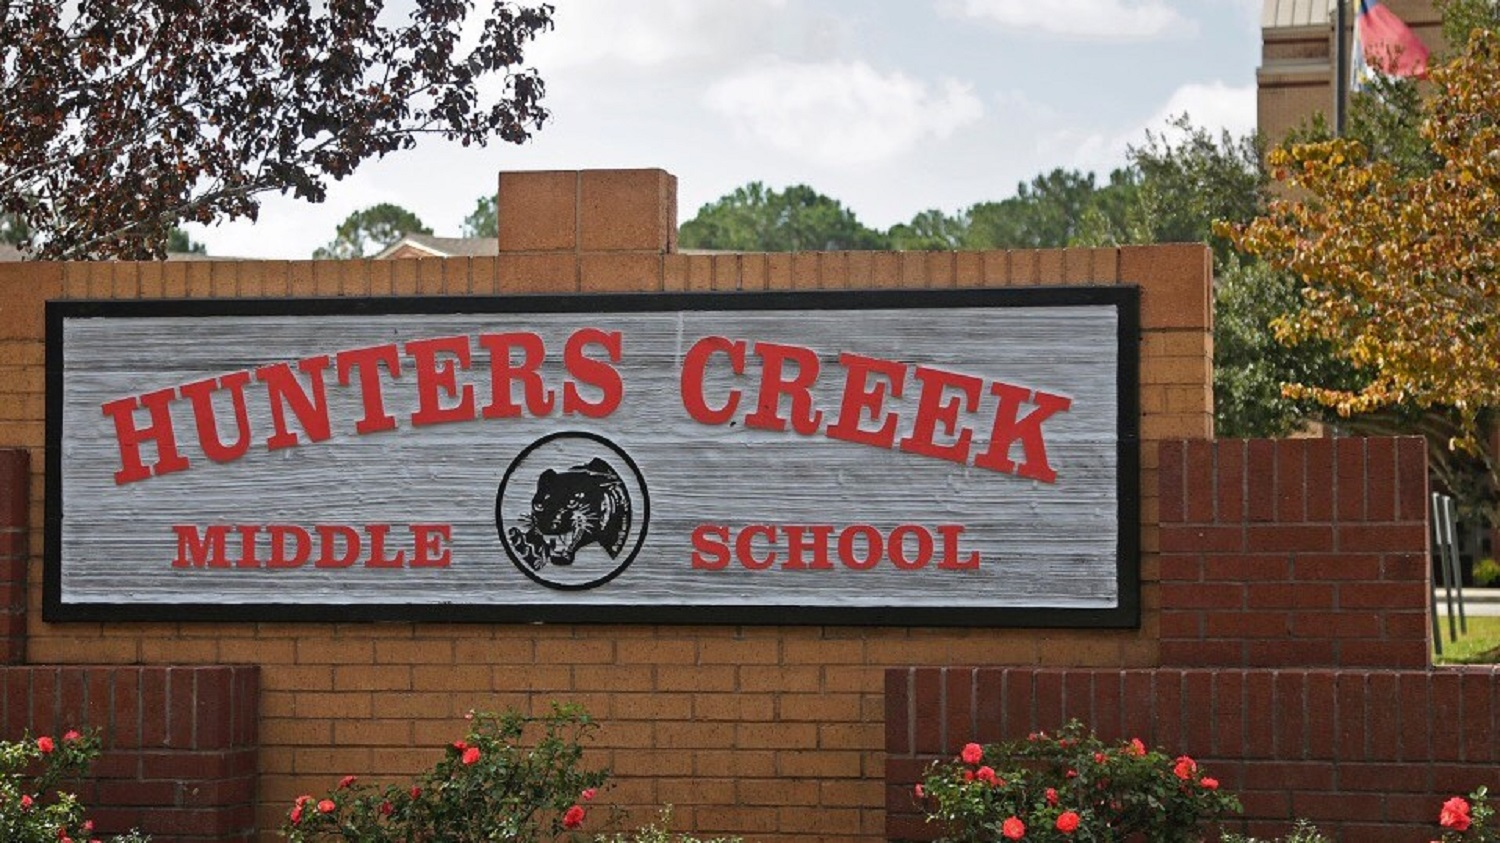 Hunters Creek Ms Homepage